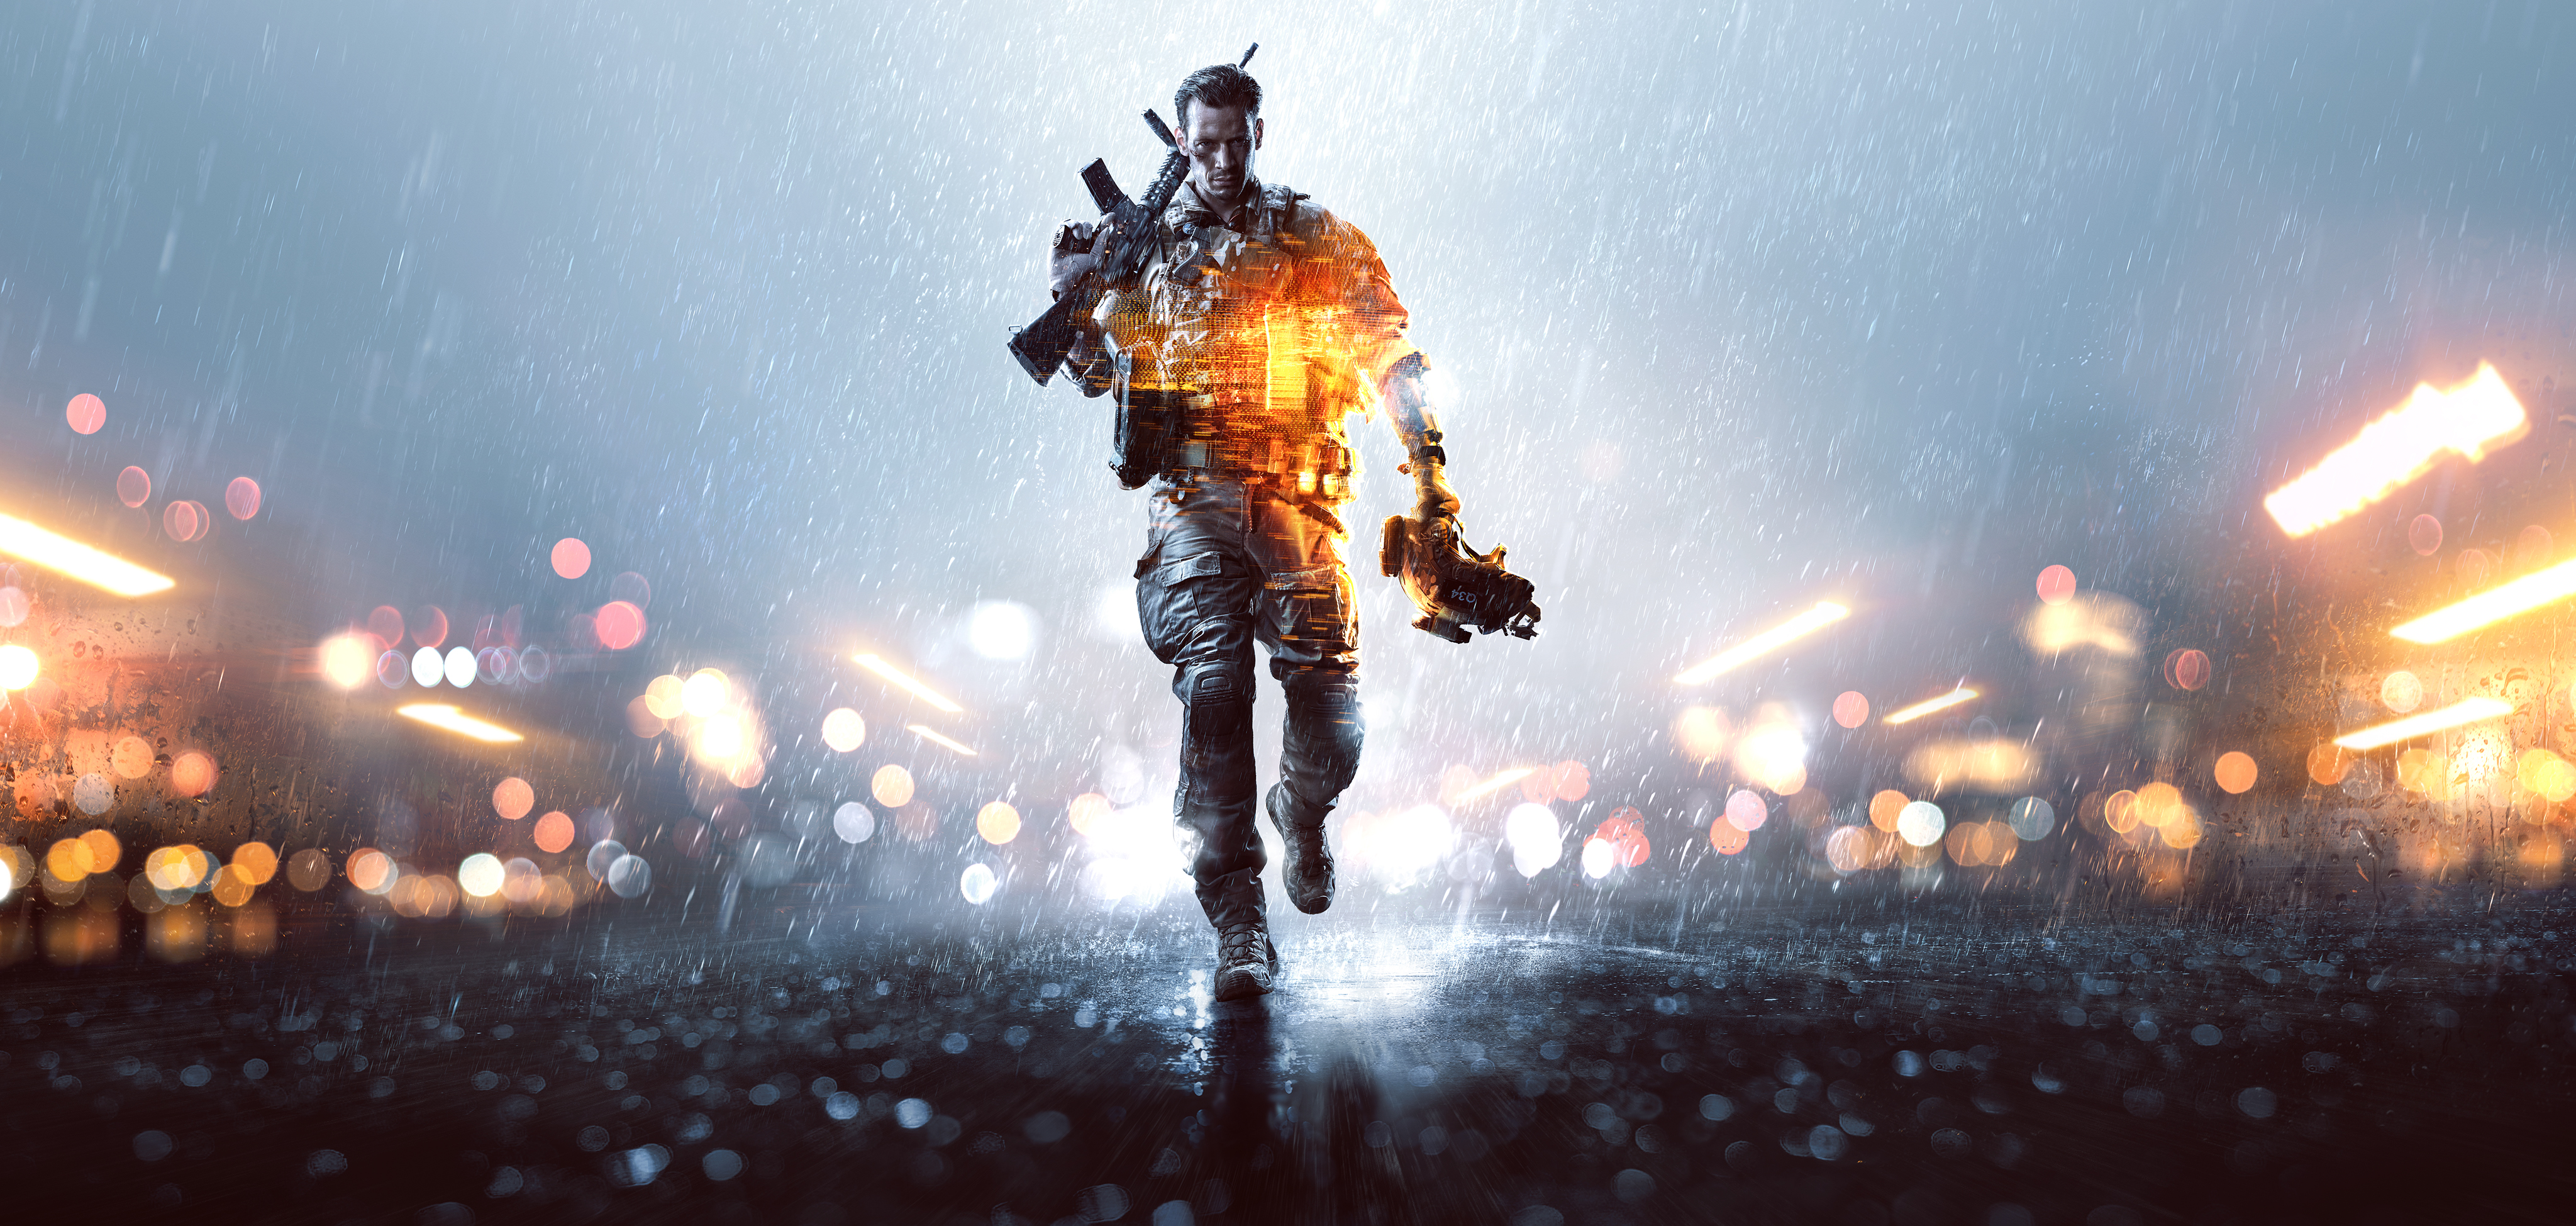 Download Wallpaper 1280x1280 Battlefield 4 Game Ea: Battlefield 4 Computer Wallpapers, Desktop Backgrounds